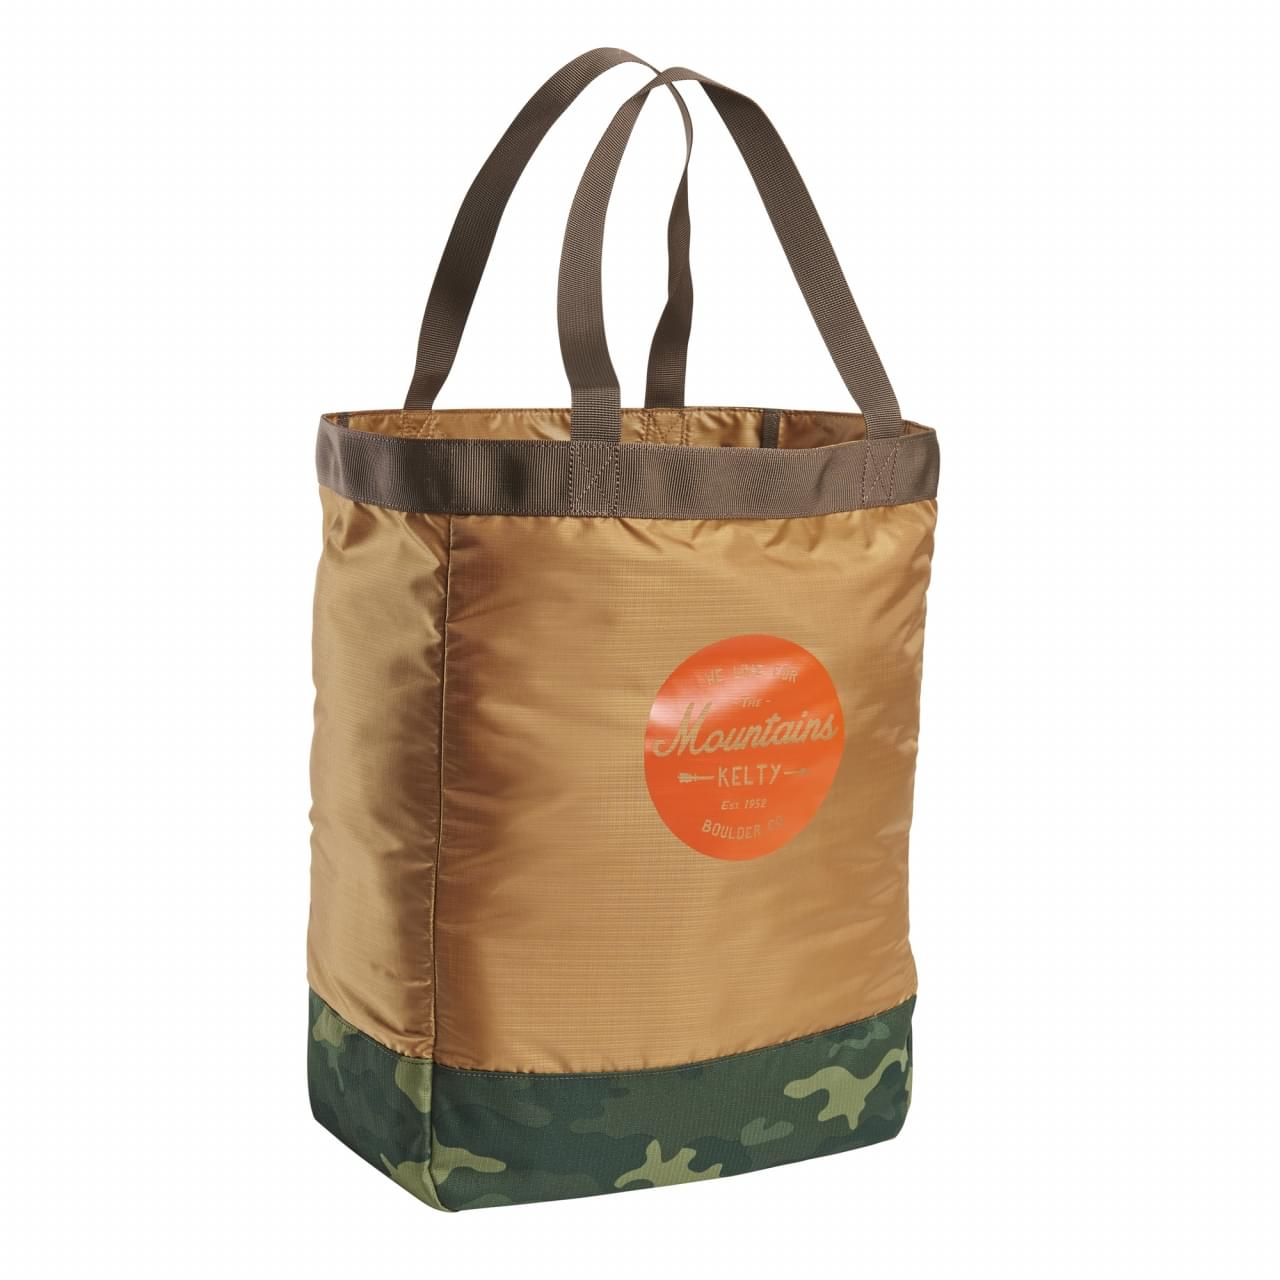 Kelty Totes Tote 30 Draagtas - Camouflage